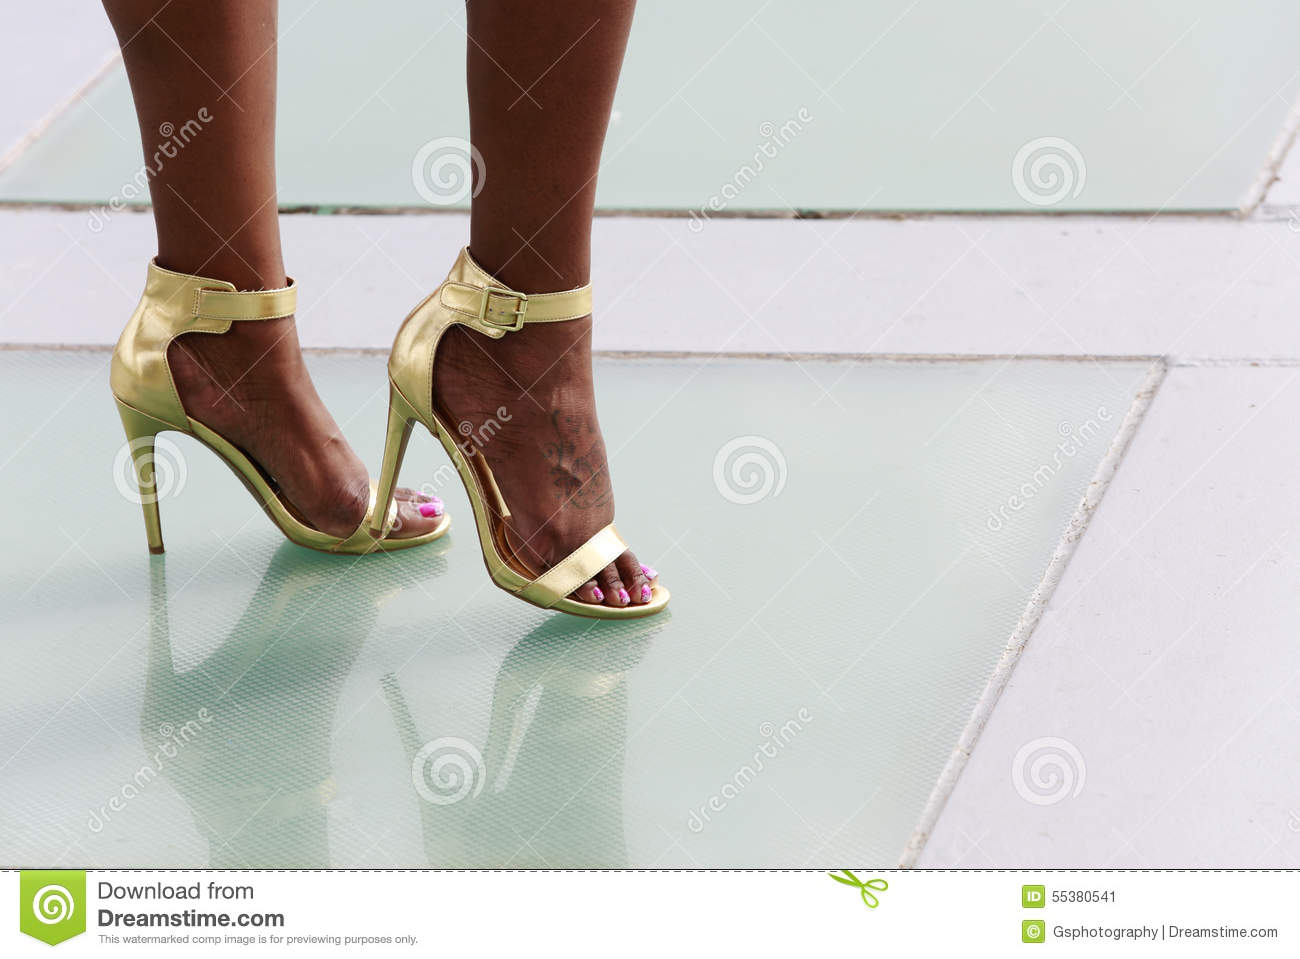 Legs of African-American woman in high heels shoes with tattoo.